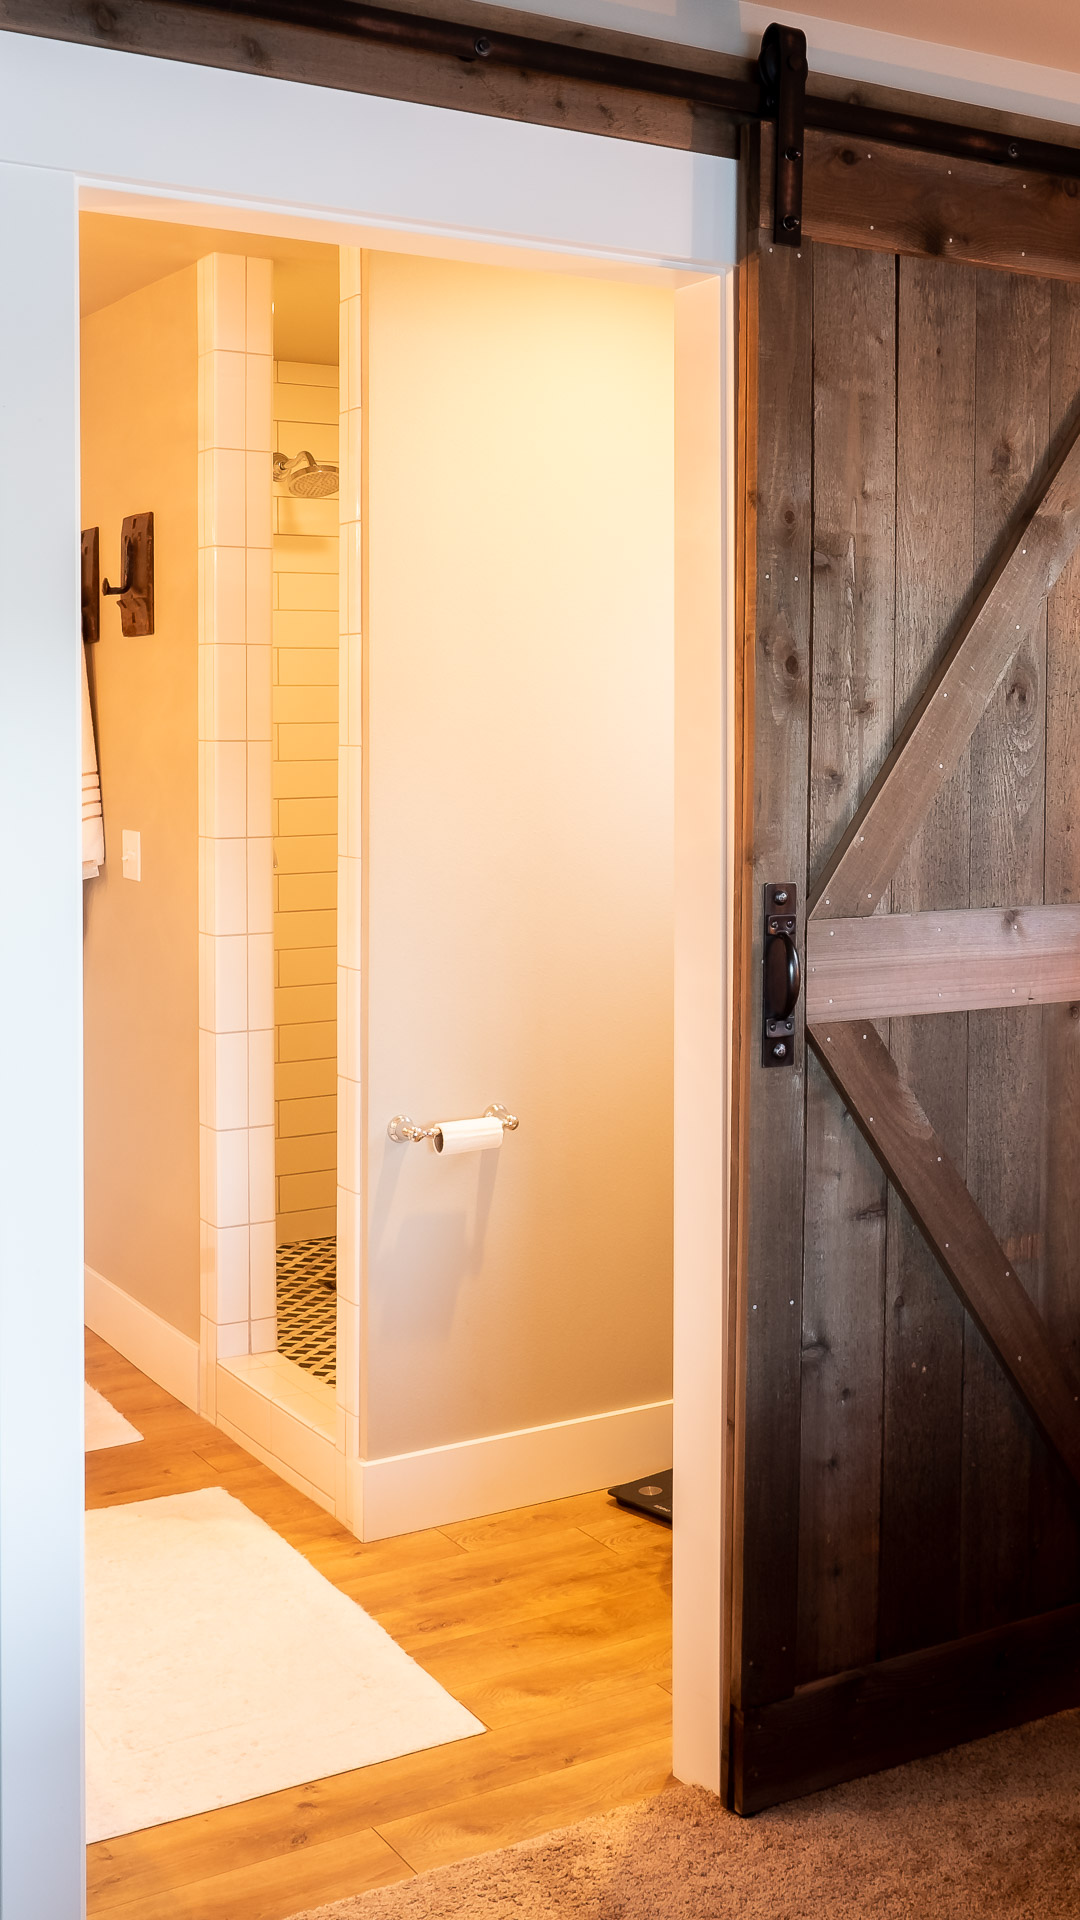 Barn door into Bathroom